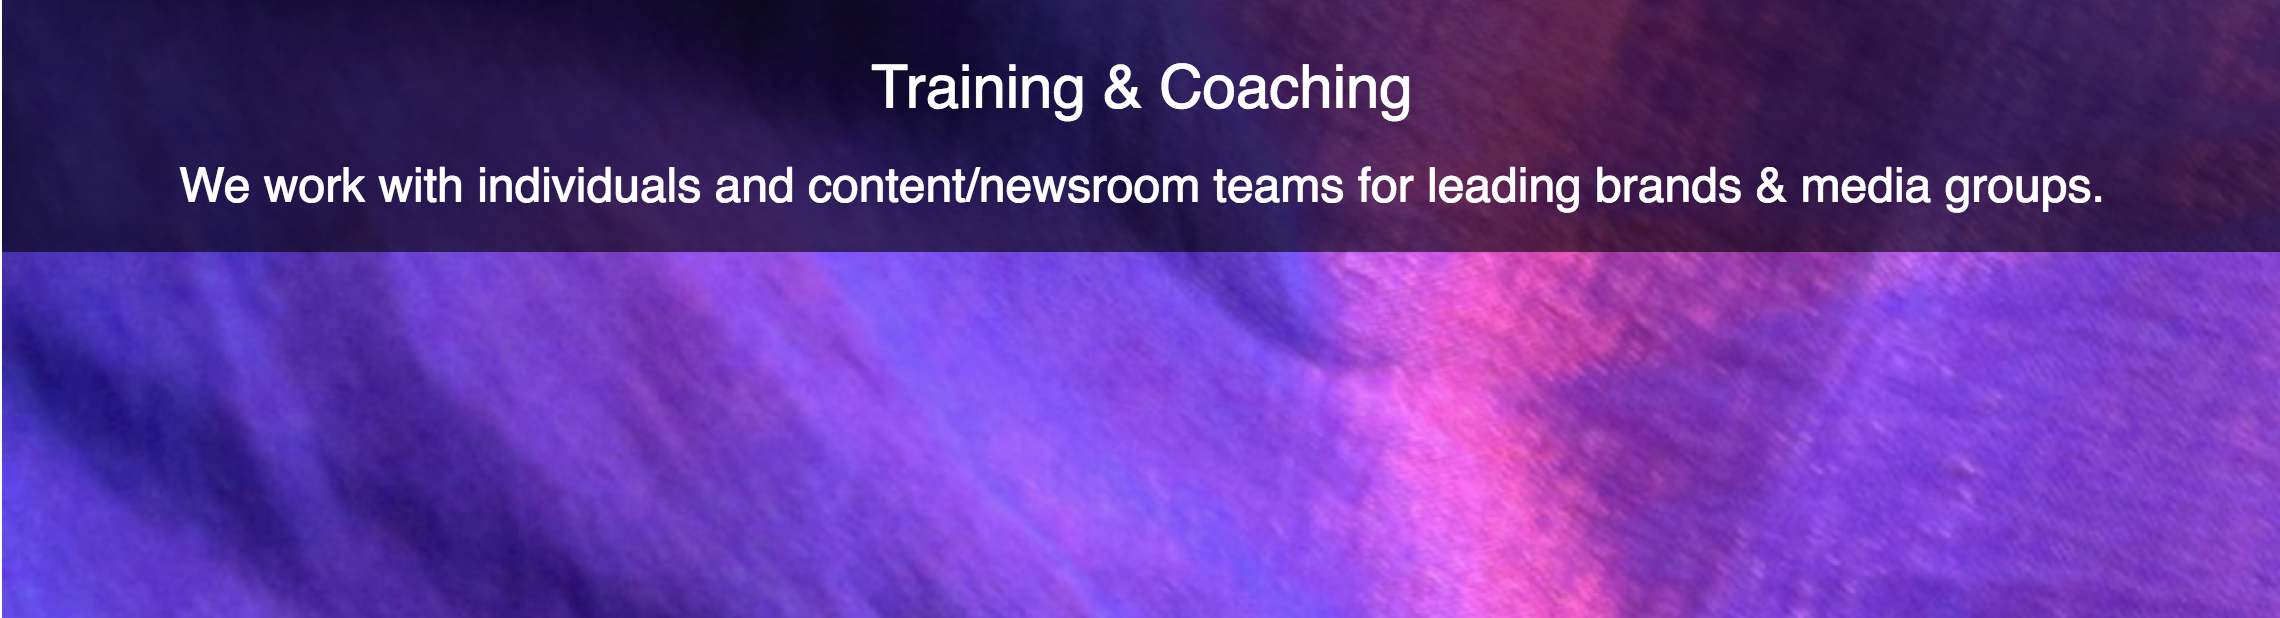 cool graphic for margot lester's coaching and training page